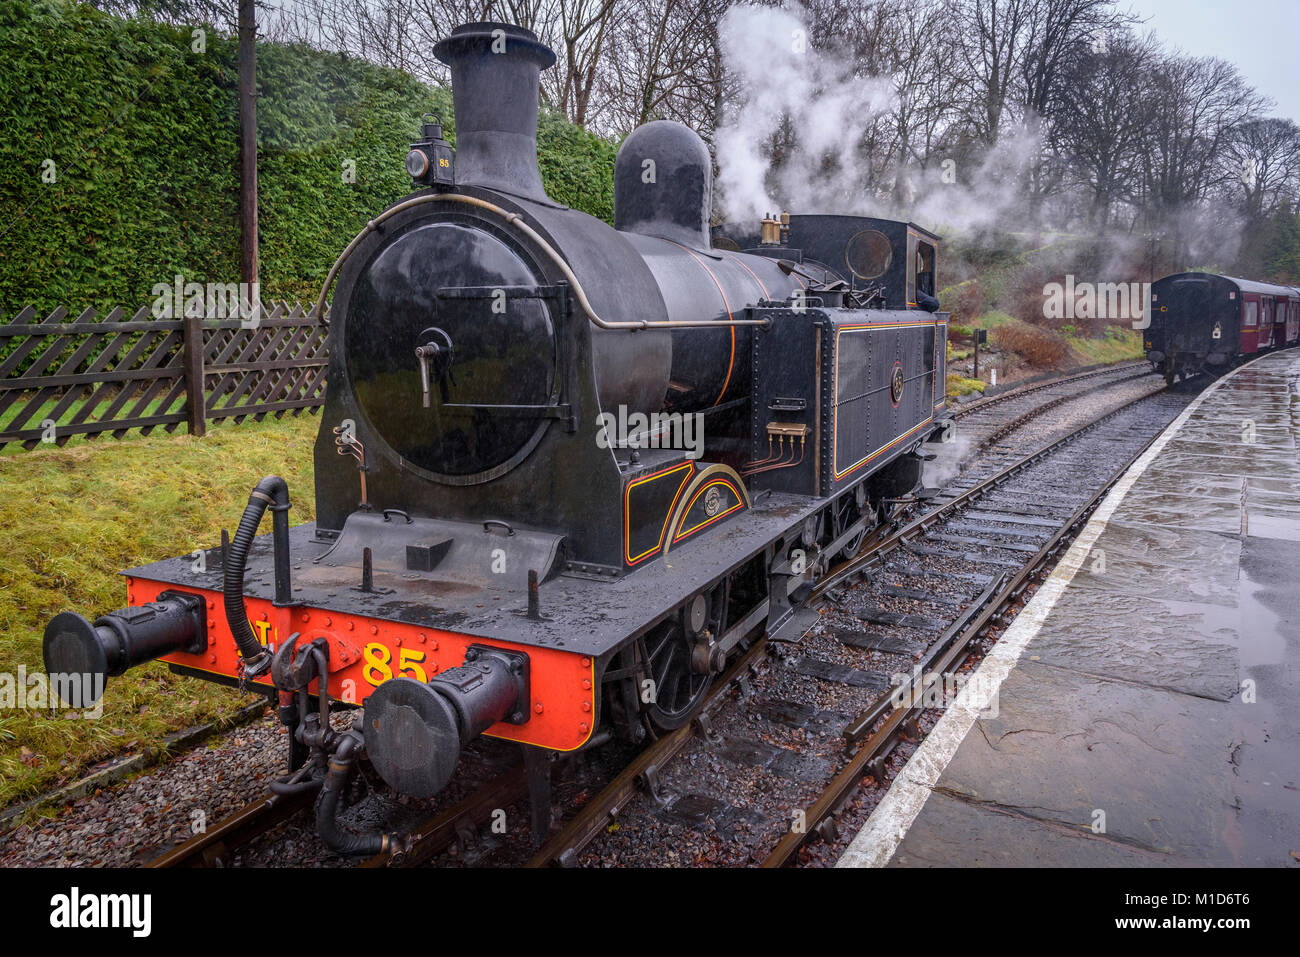 TAff VAlley Railway 02 0-6-2T NO. 85 tank engine on the Keighley and Worth Valley railway. - Stock Image